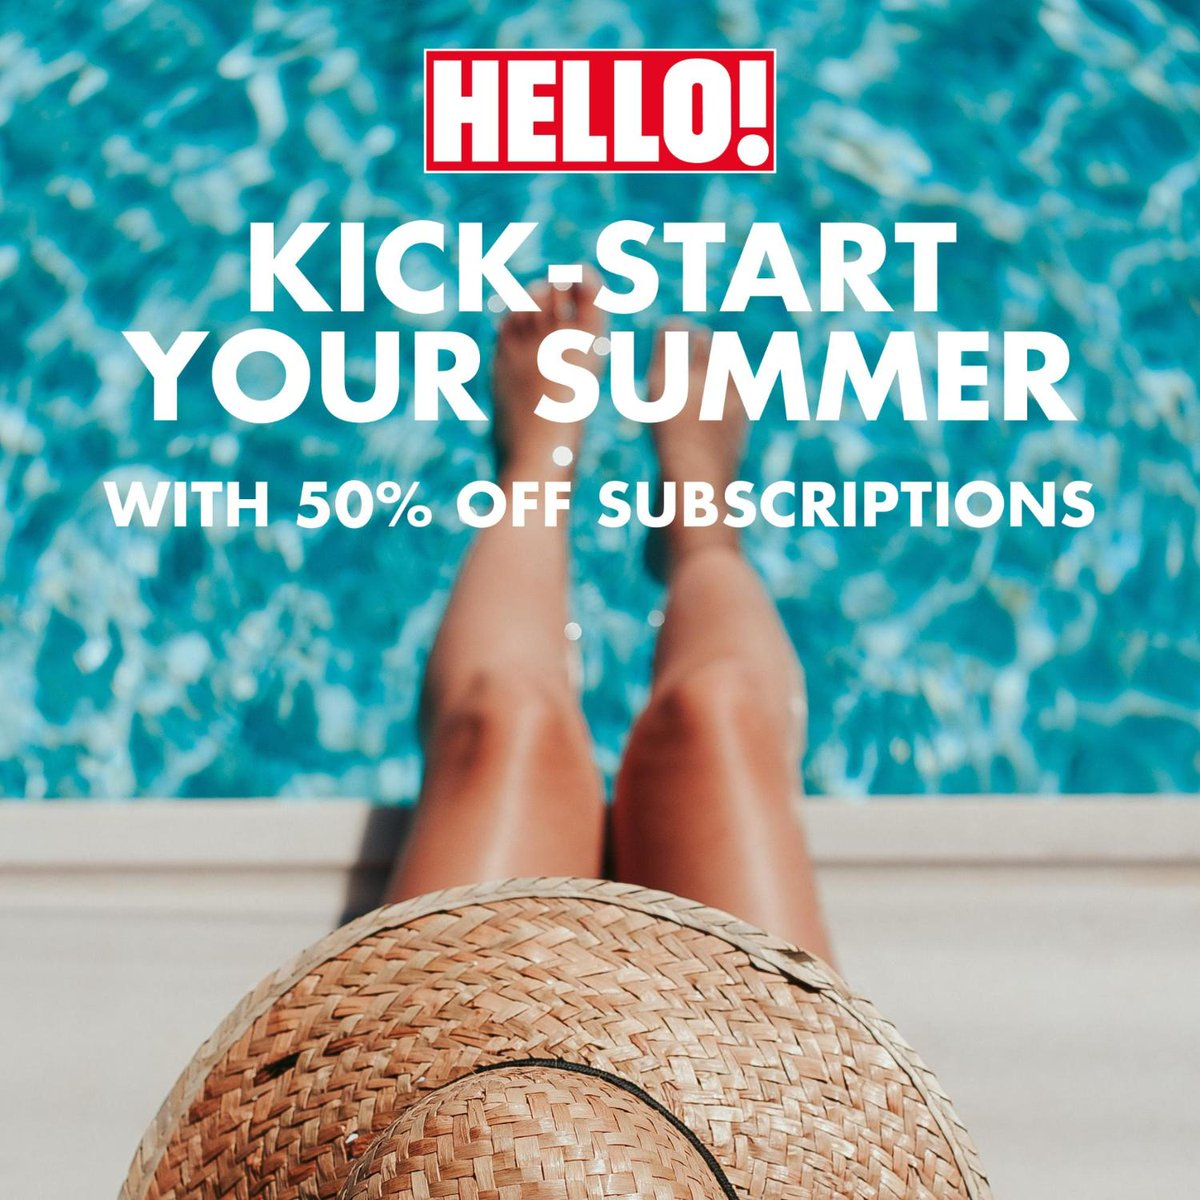 Save 50% off HELLO! subscriptions this Summer ??